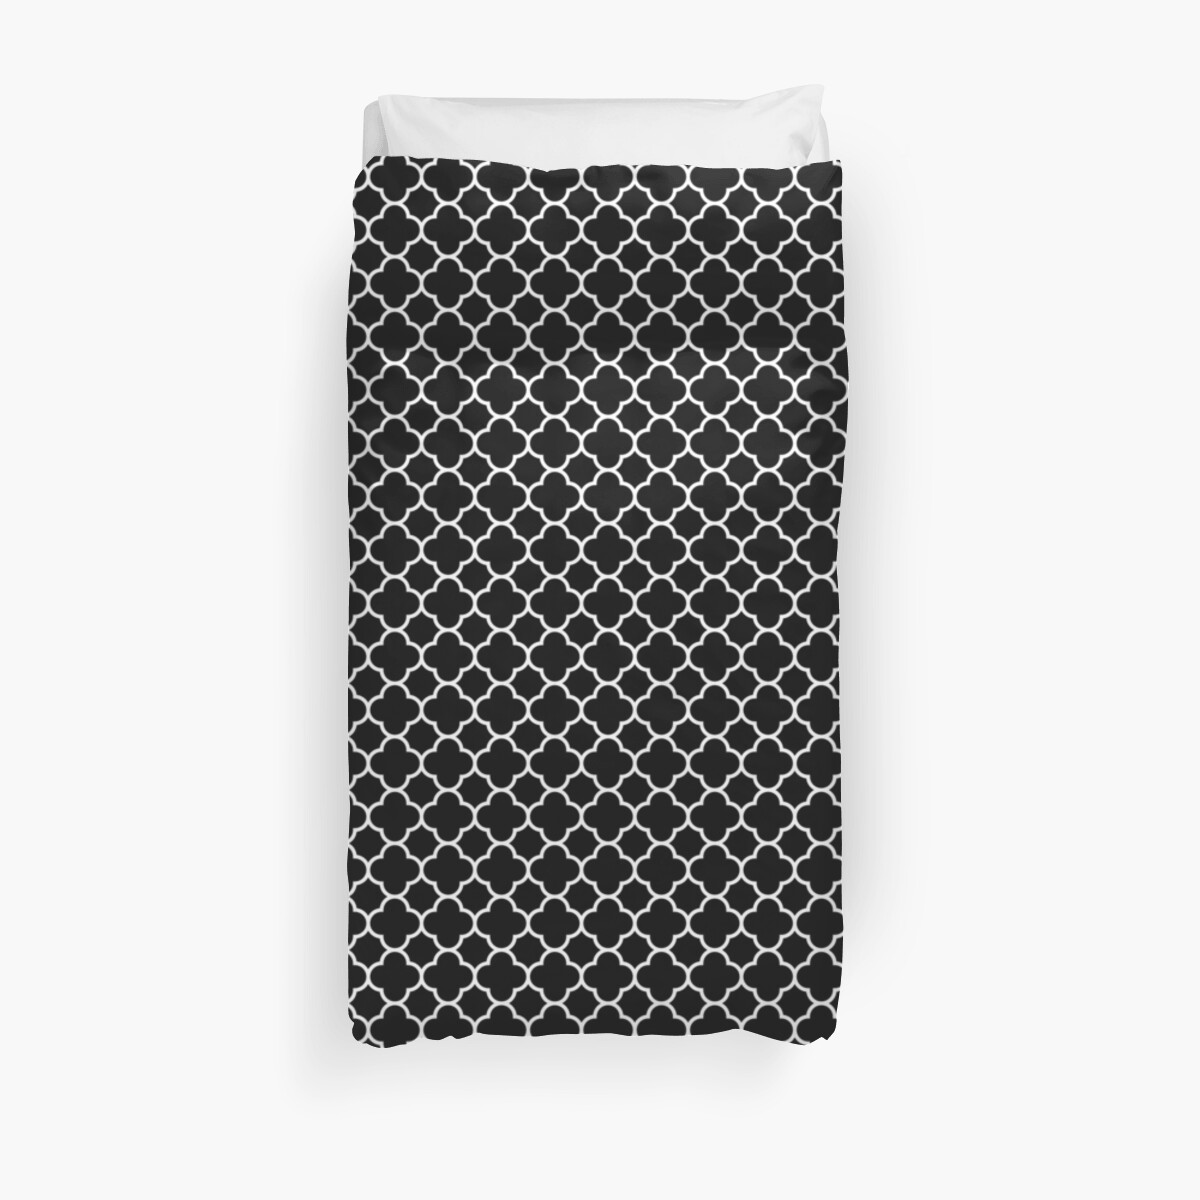 Black and White Quatrefoil Pattern  by TigerLynx